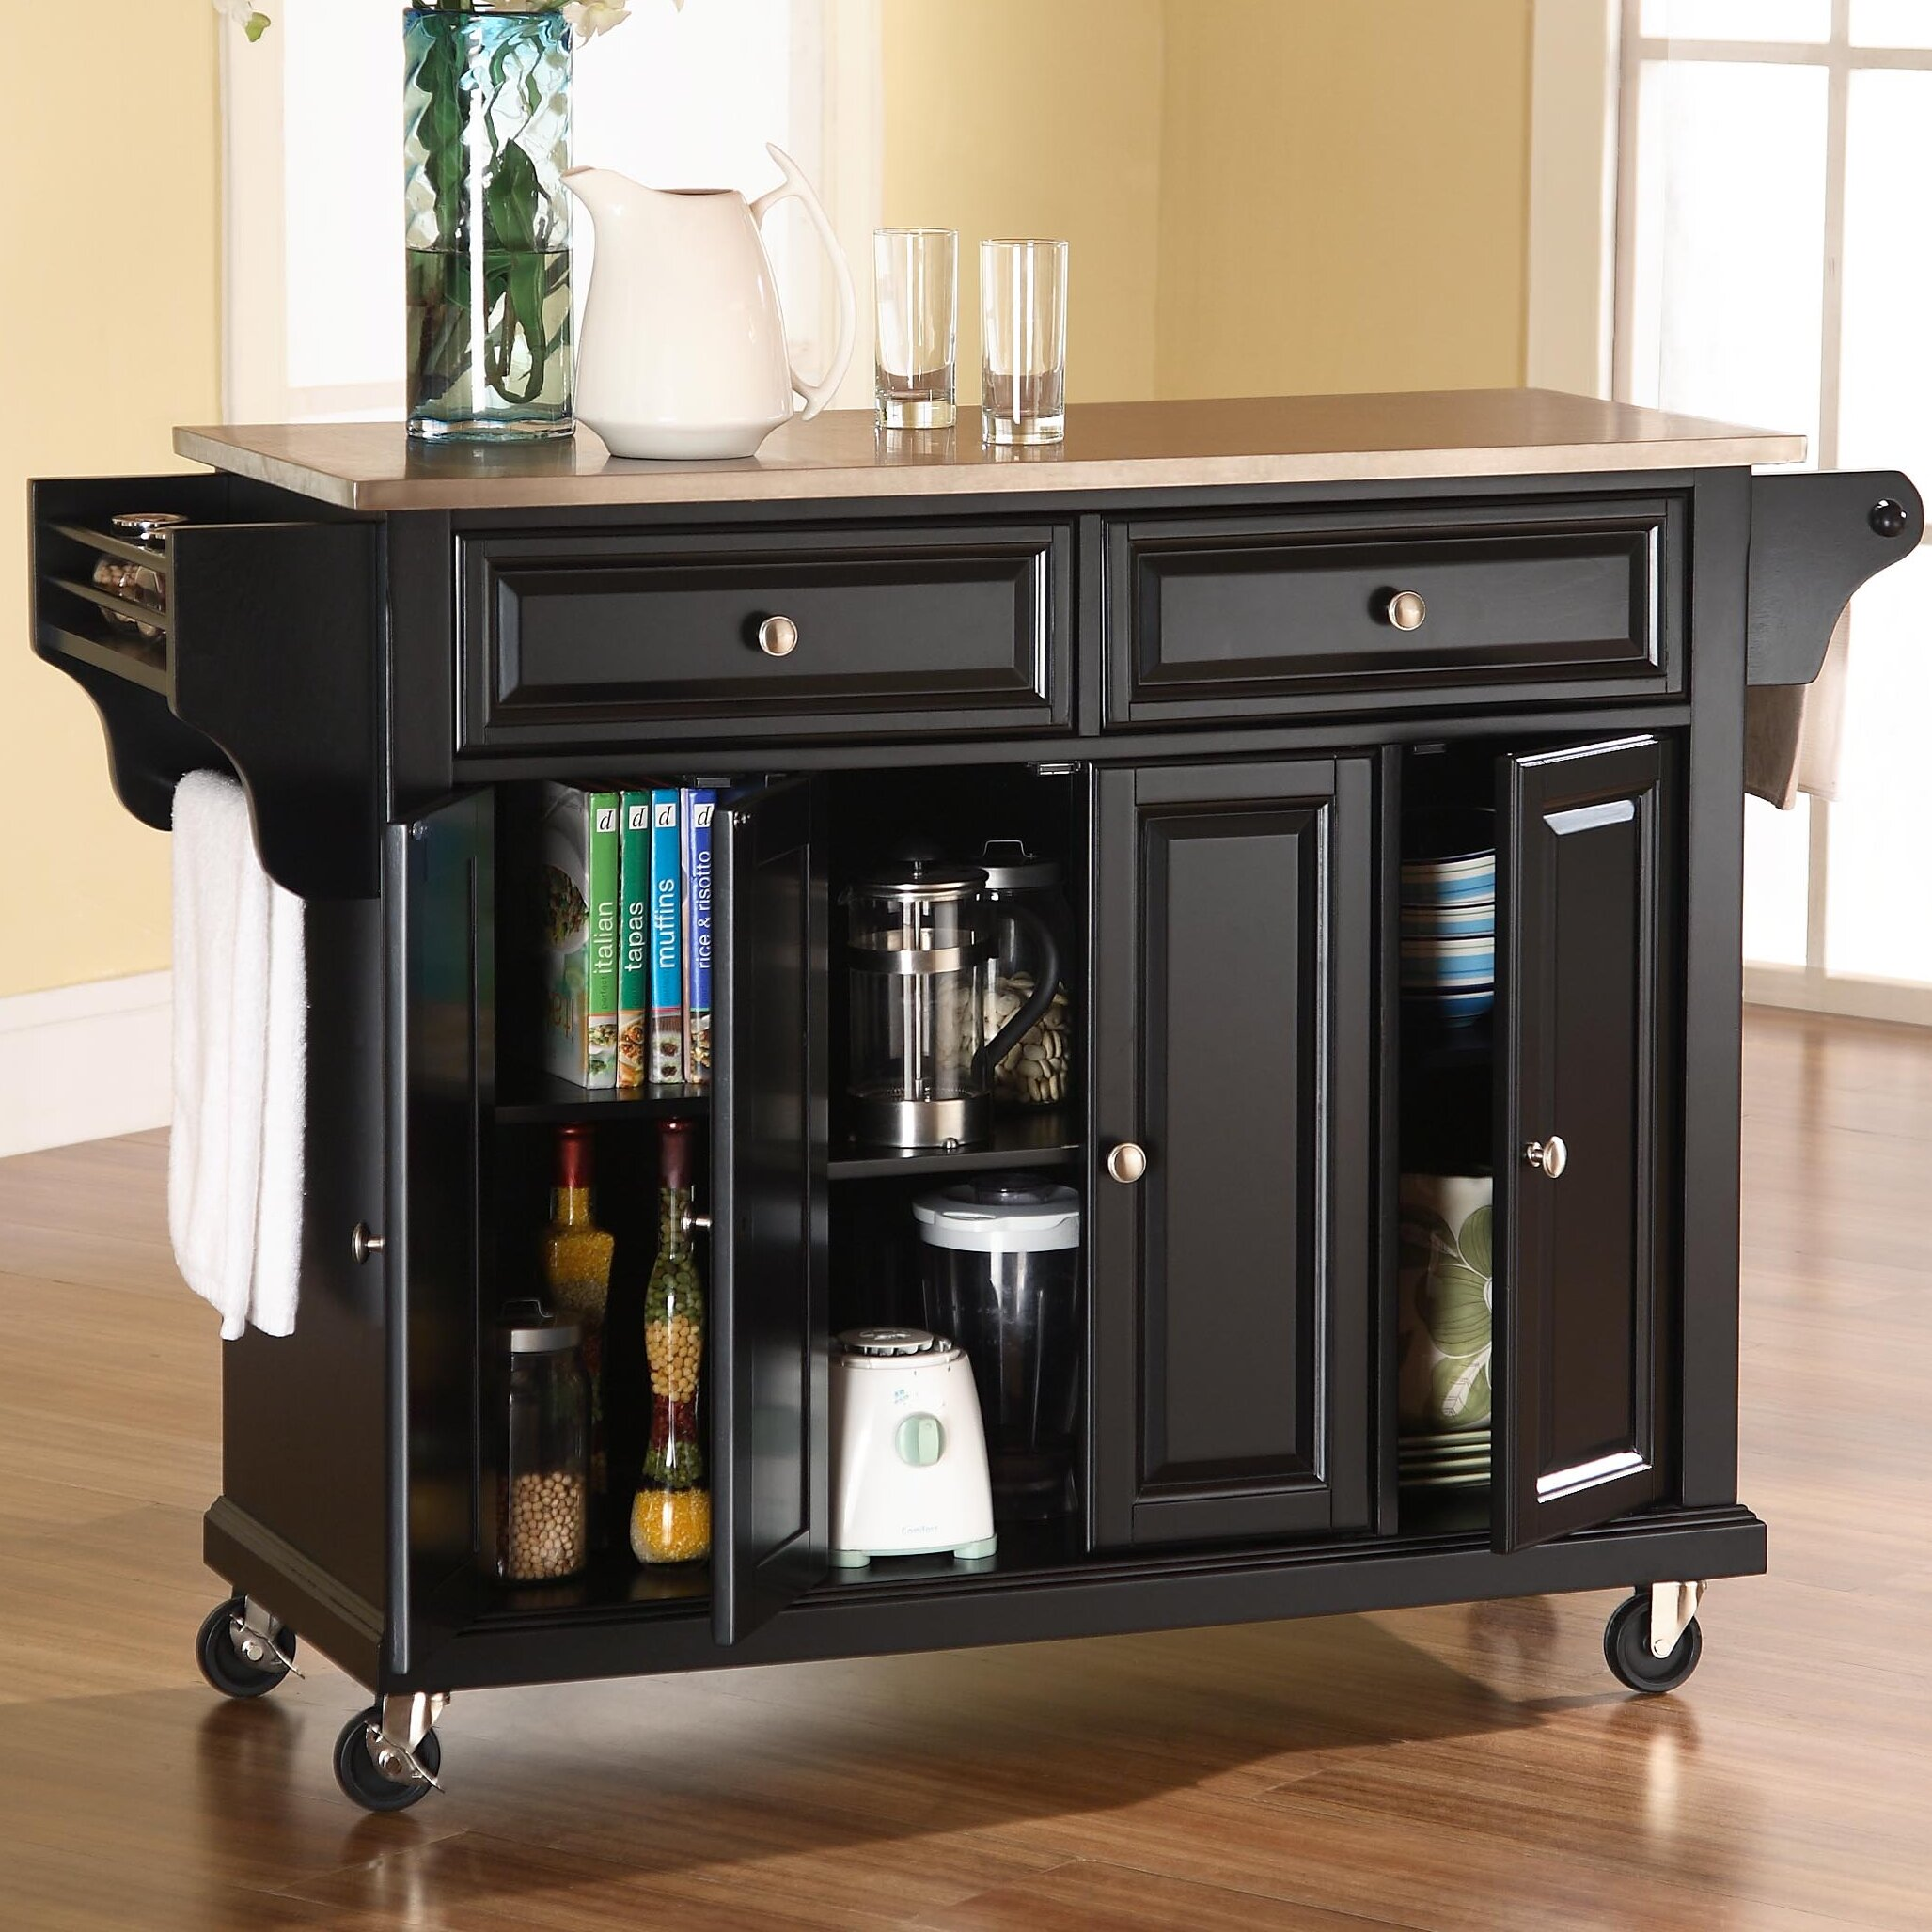 darby home co pottstown kitchen island with stainless